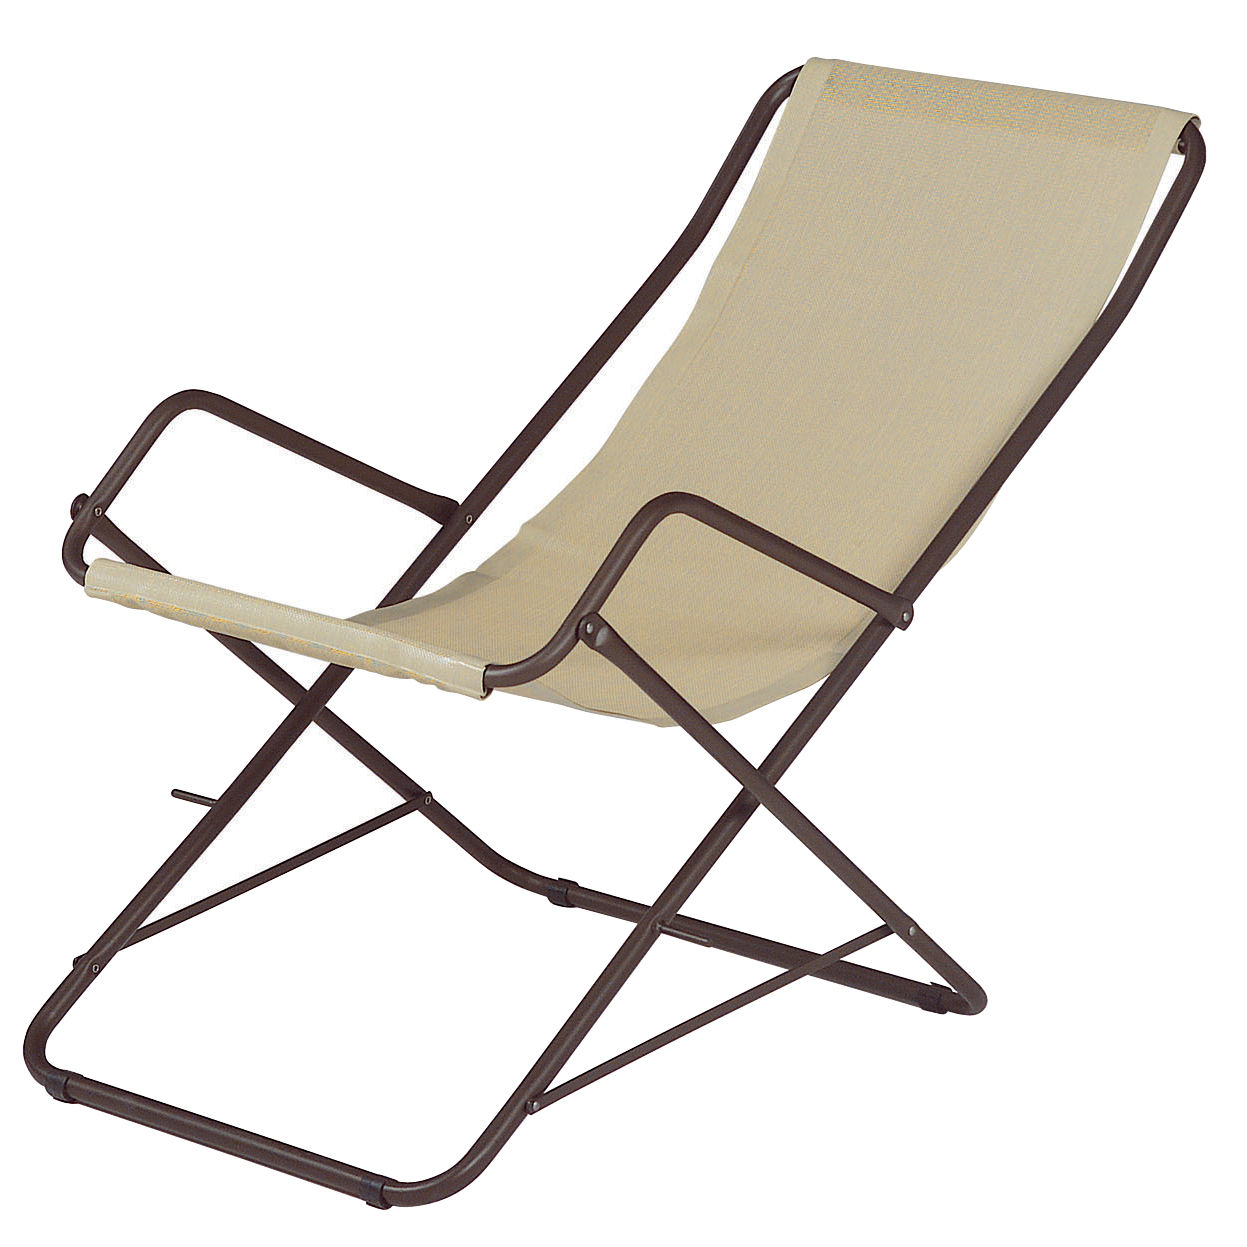 Outdoor - Sun Loungers & Hammocks - Bahama Reclining chair - Foldable by Emu - Beige / Bronze structure - Cloth, Varnished steel